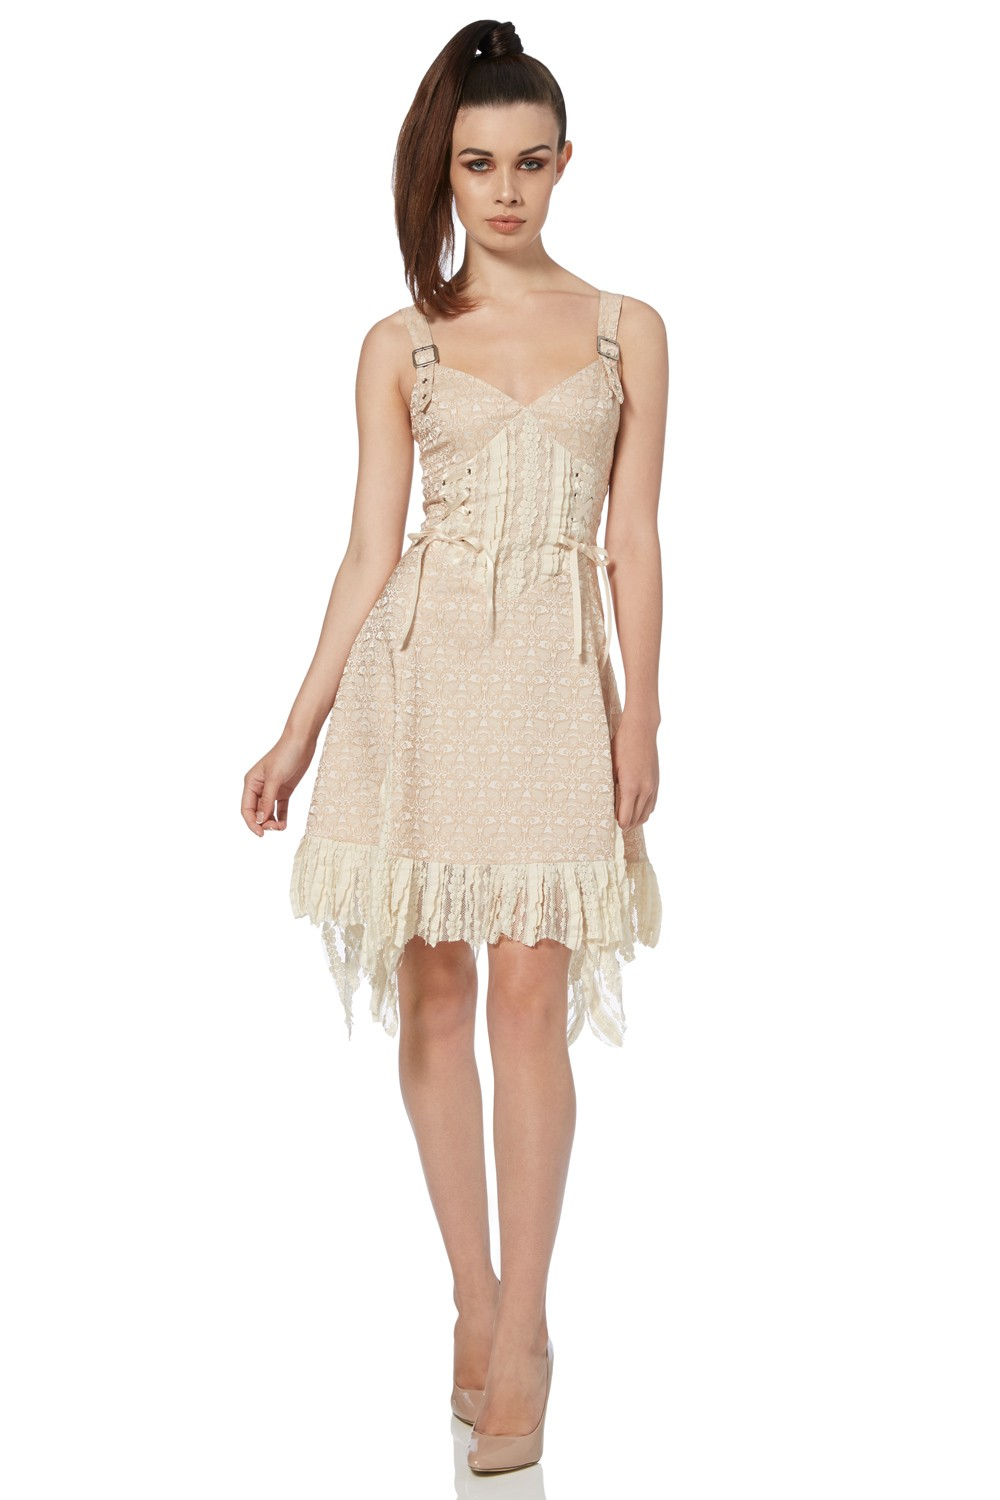 rebelsmarket_jawbreaker_clothing_womens_cream_victoriana_lace_dress_dresses_2.jpg